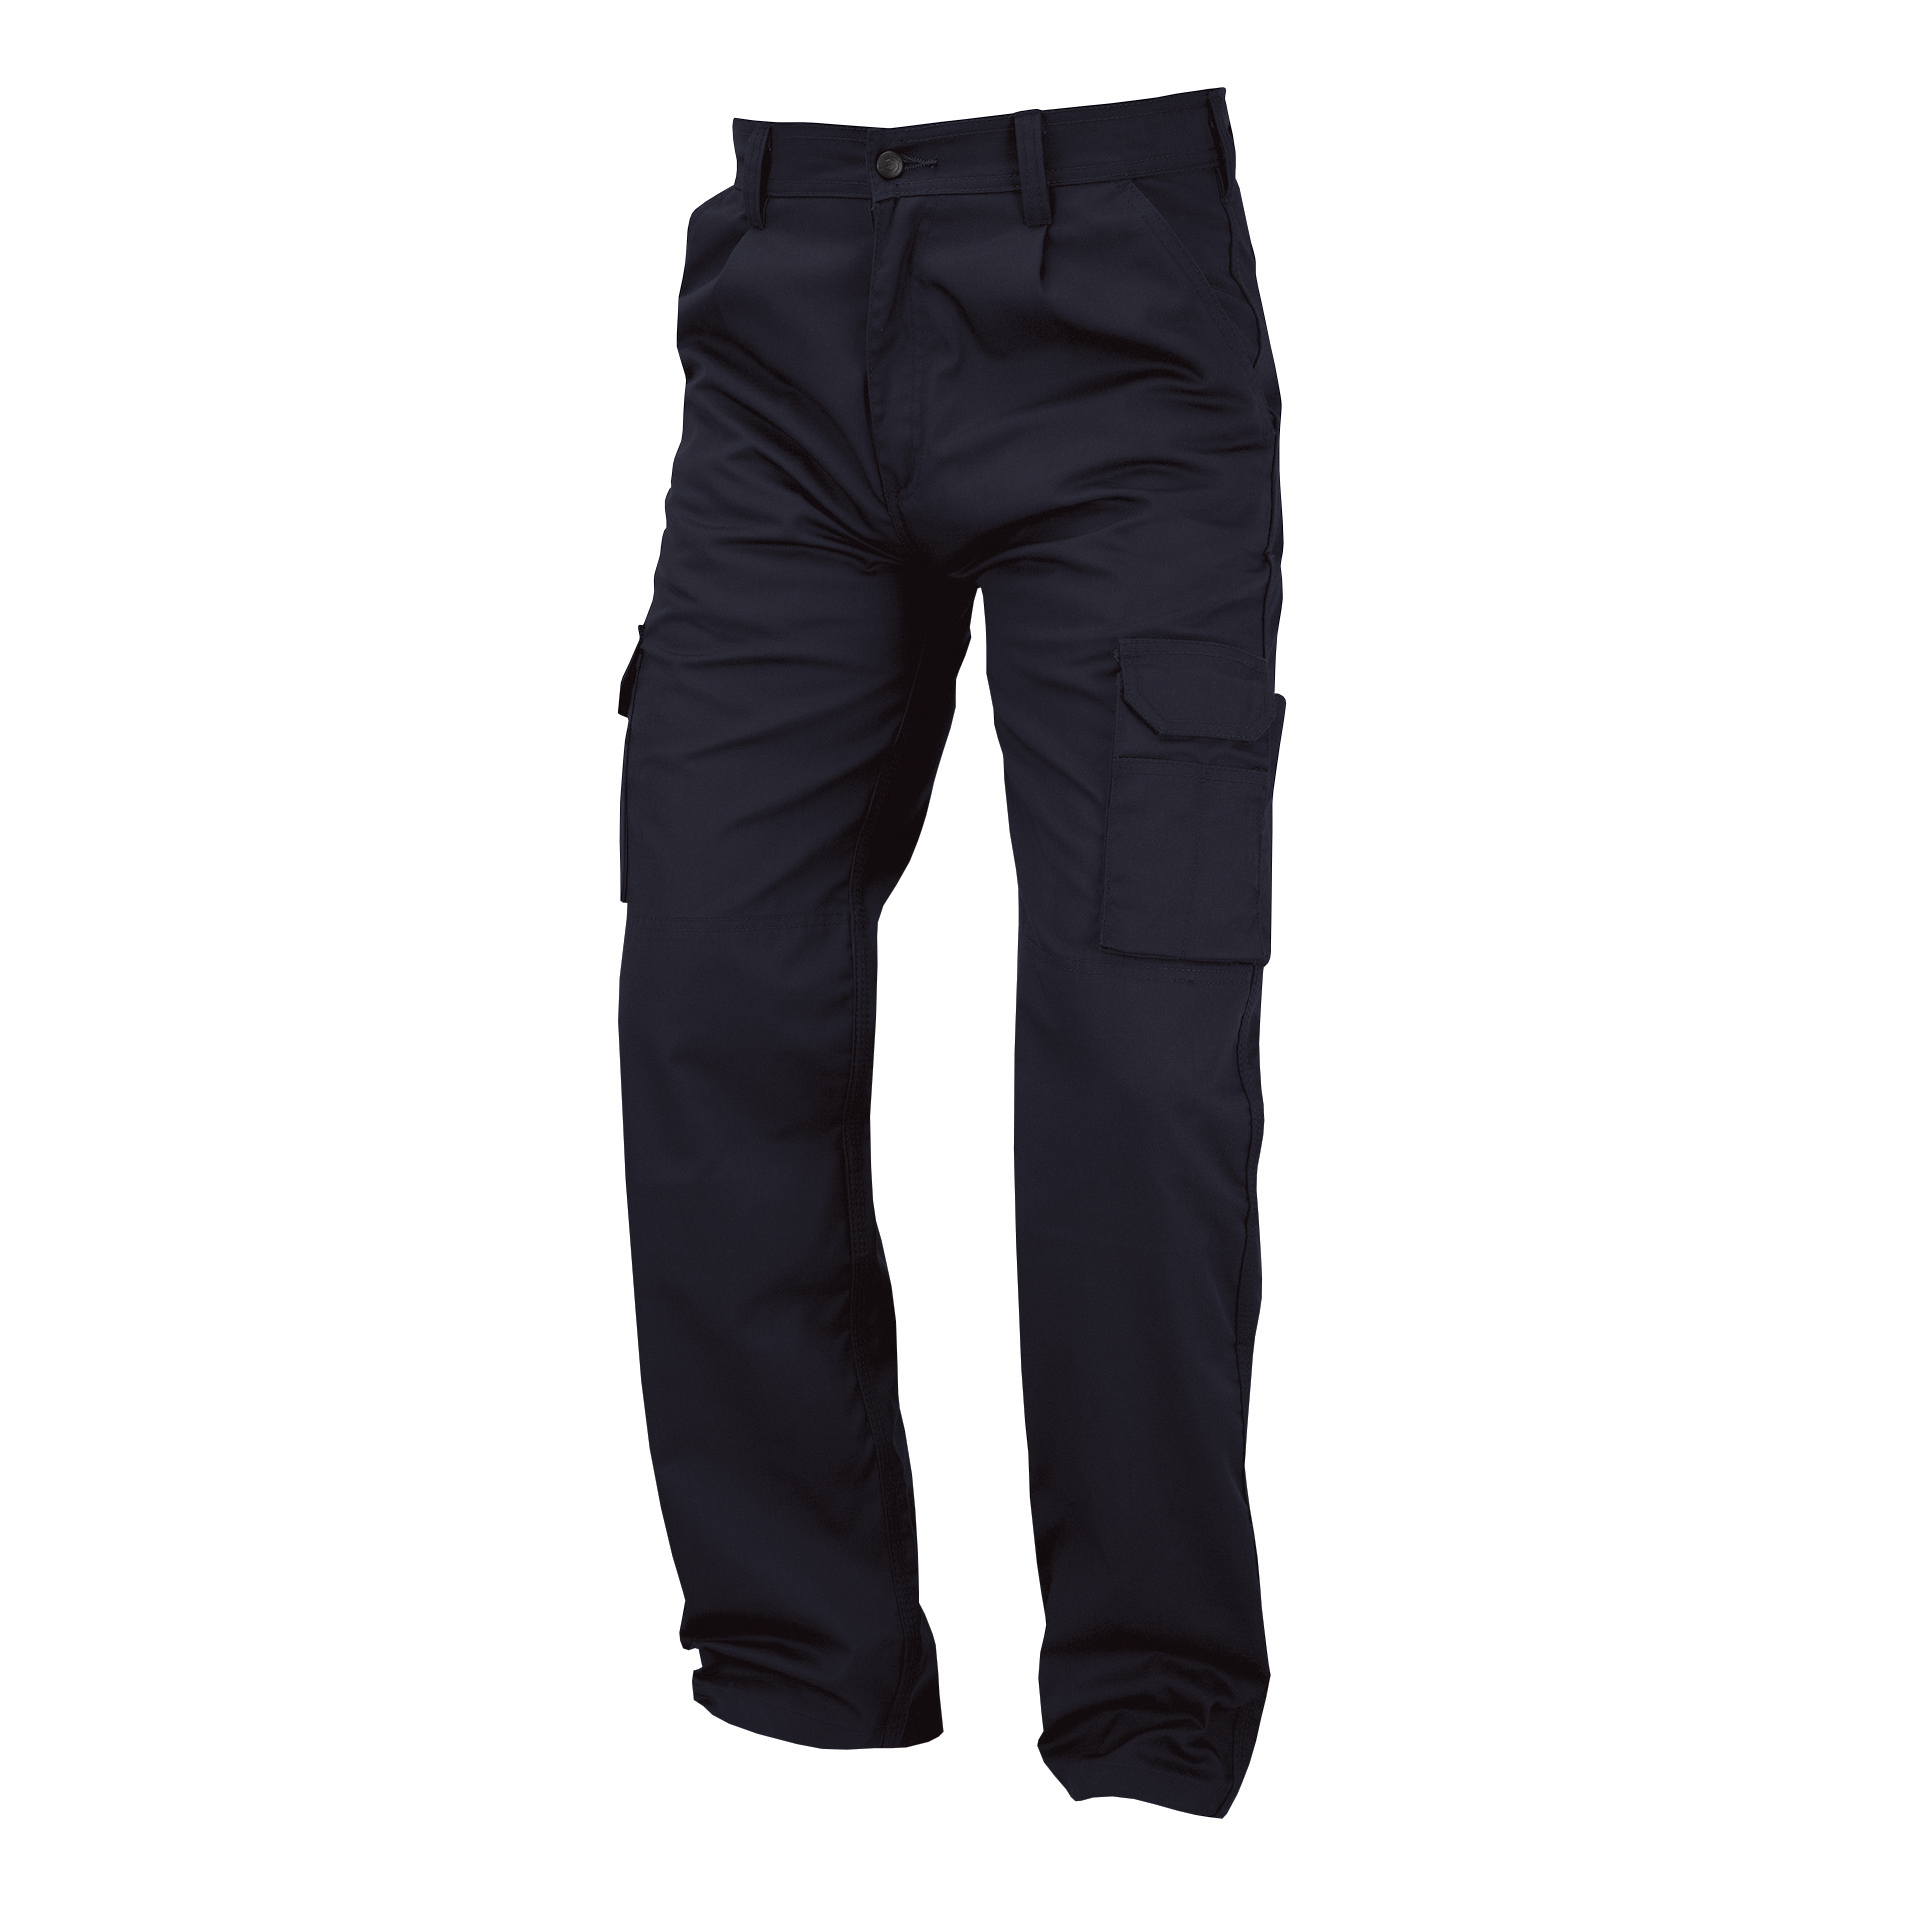 Combat Trouser Multi-functional Waist 30in Leg 29in Navy PCTHWN30S *Approx 3 Day Leadtime*